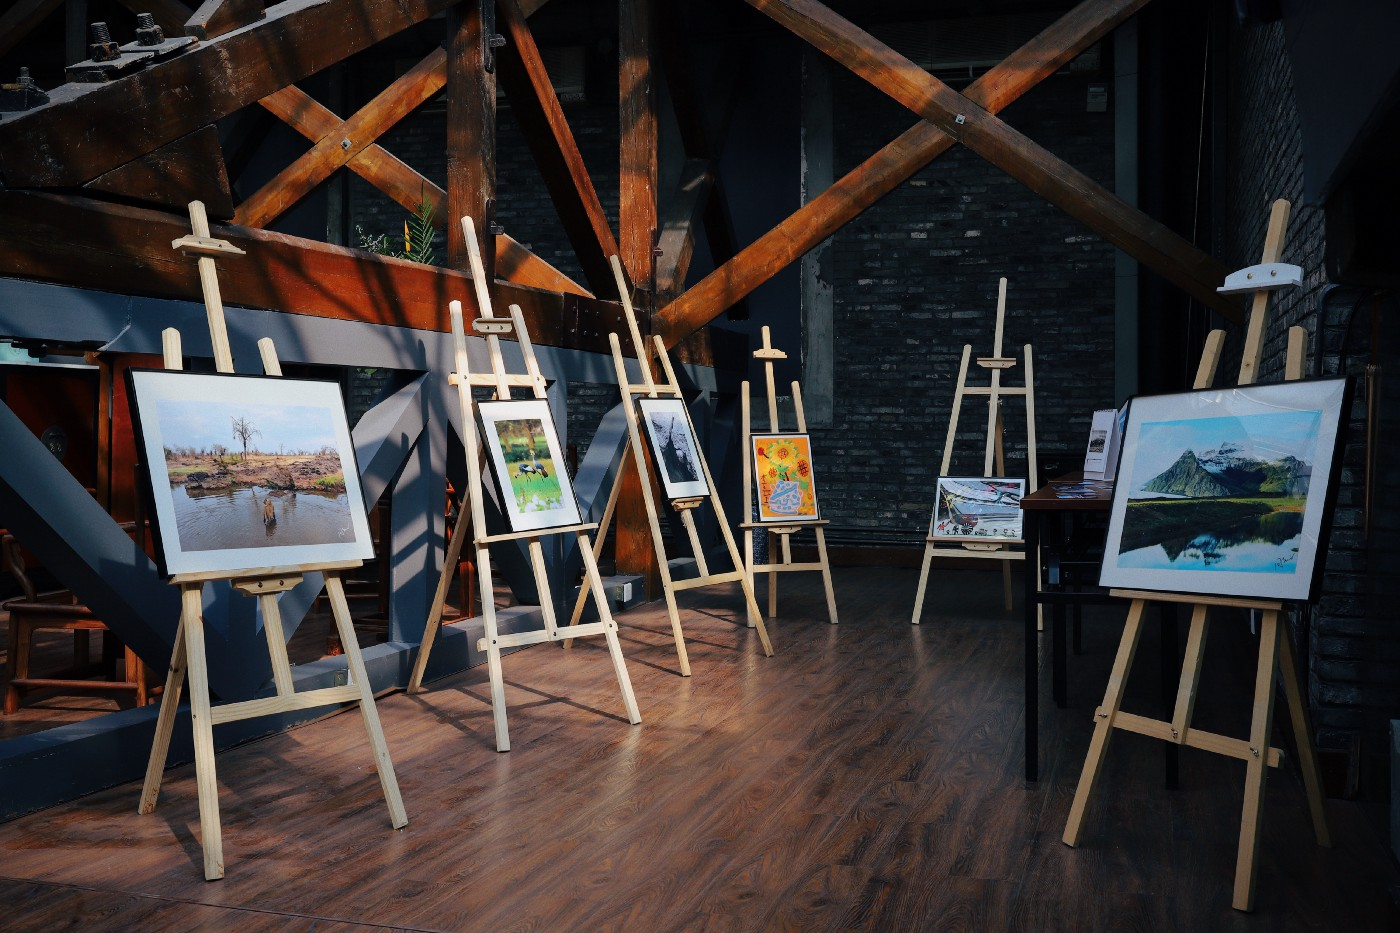 six paintings displayed on easels